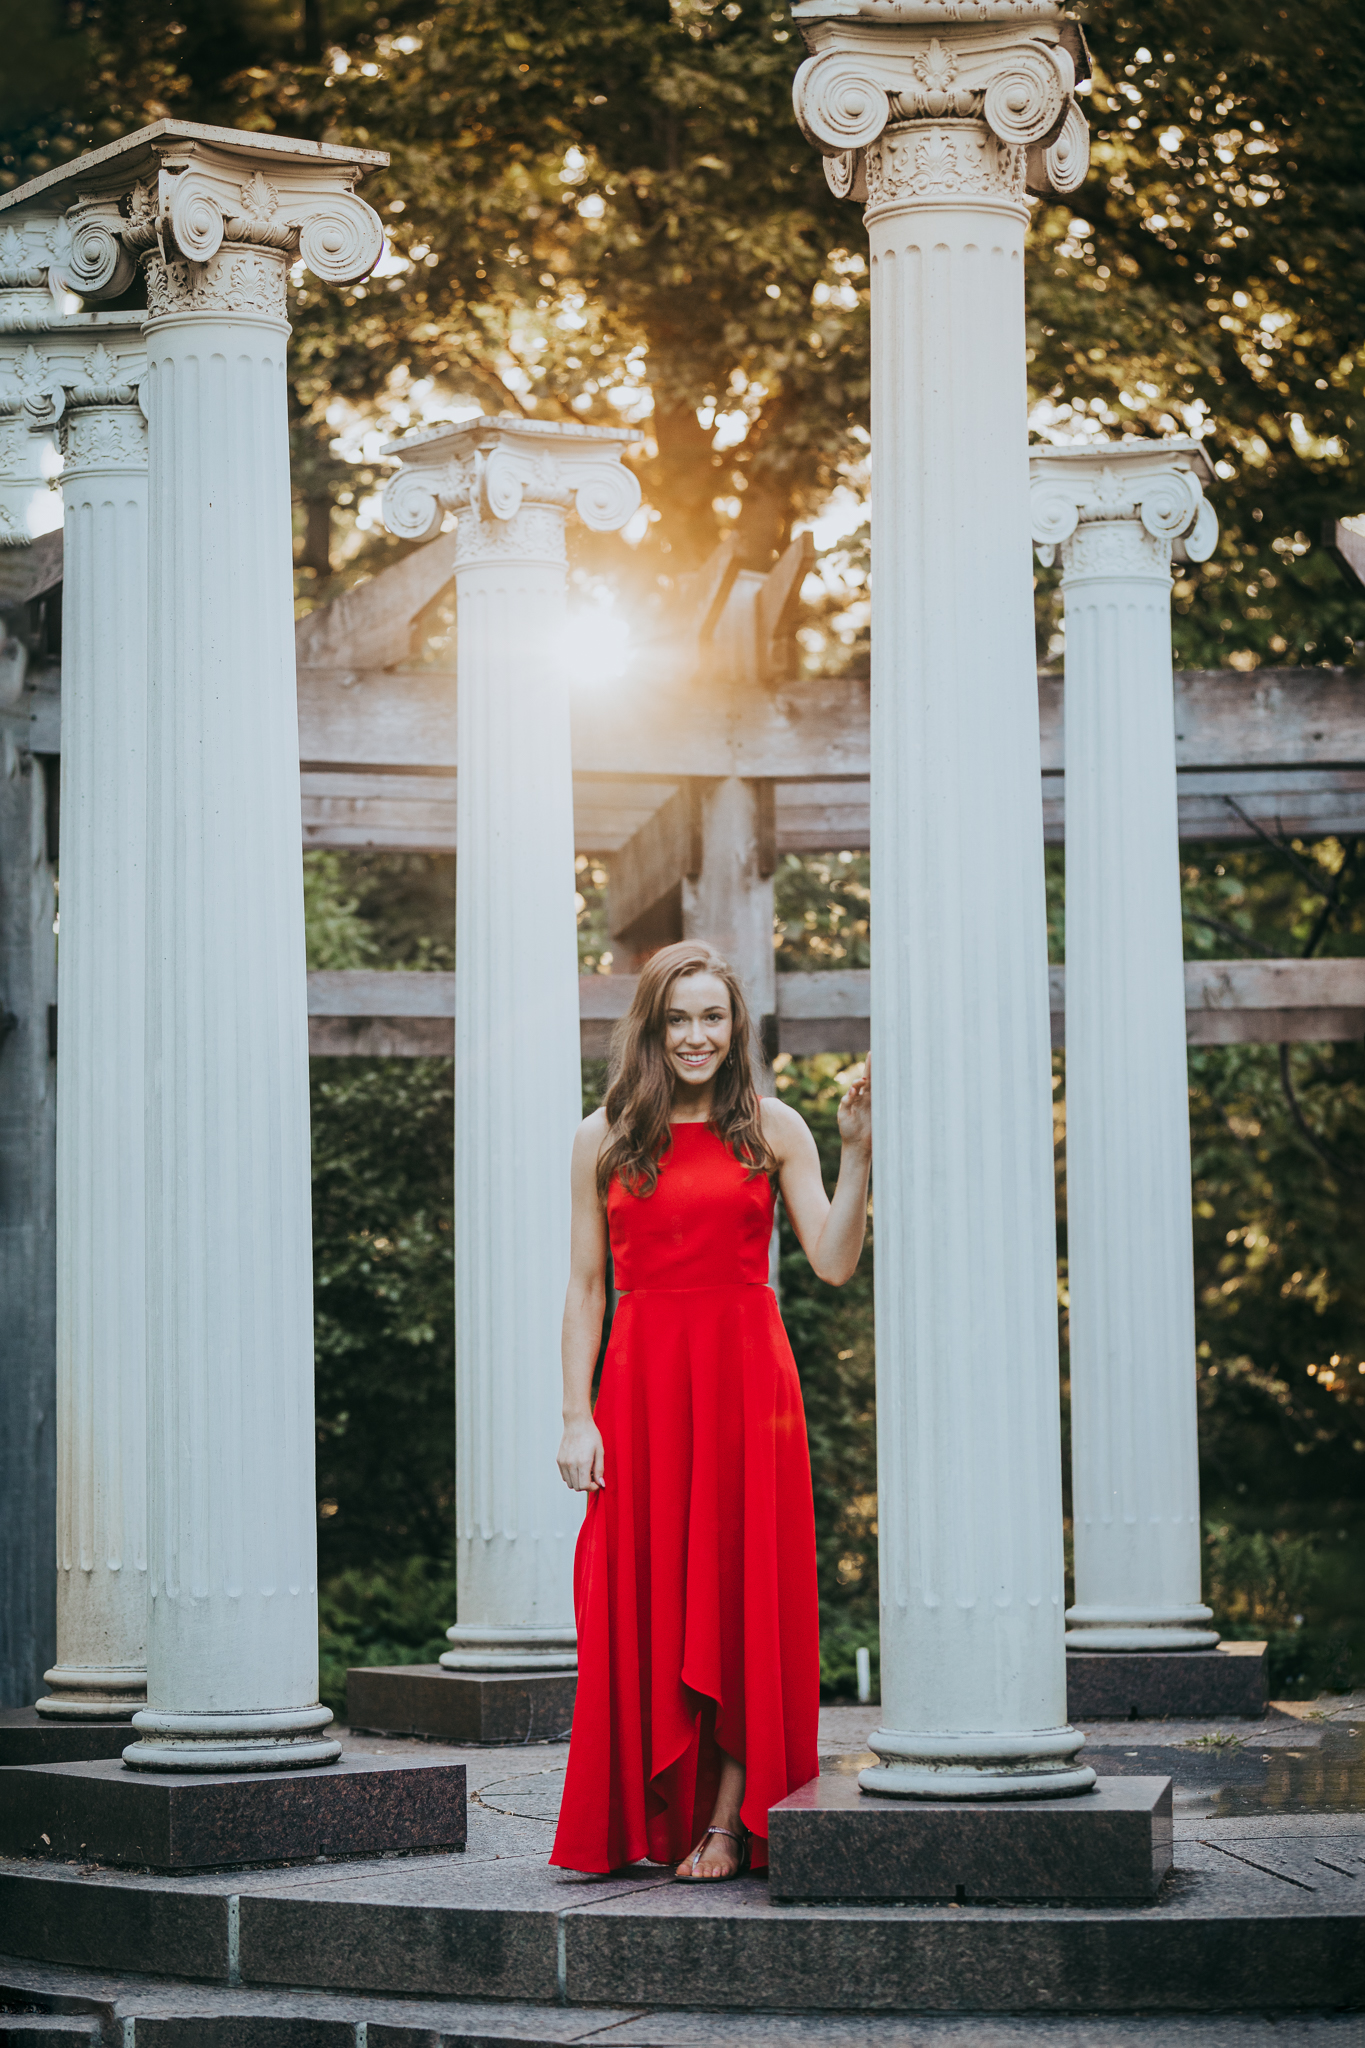 girl in red dress standing by Greek Pillars in the sunset - Wayzata High School Photographer